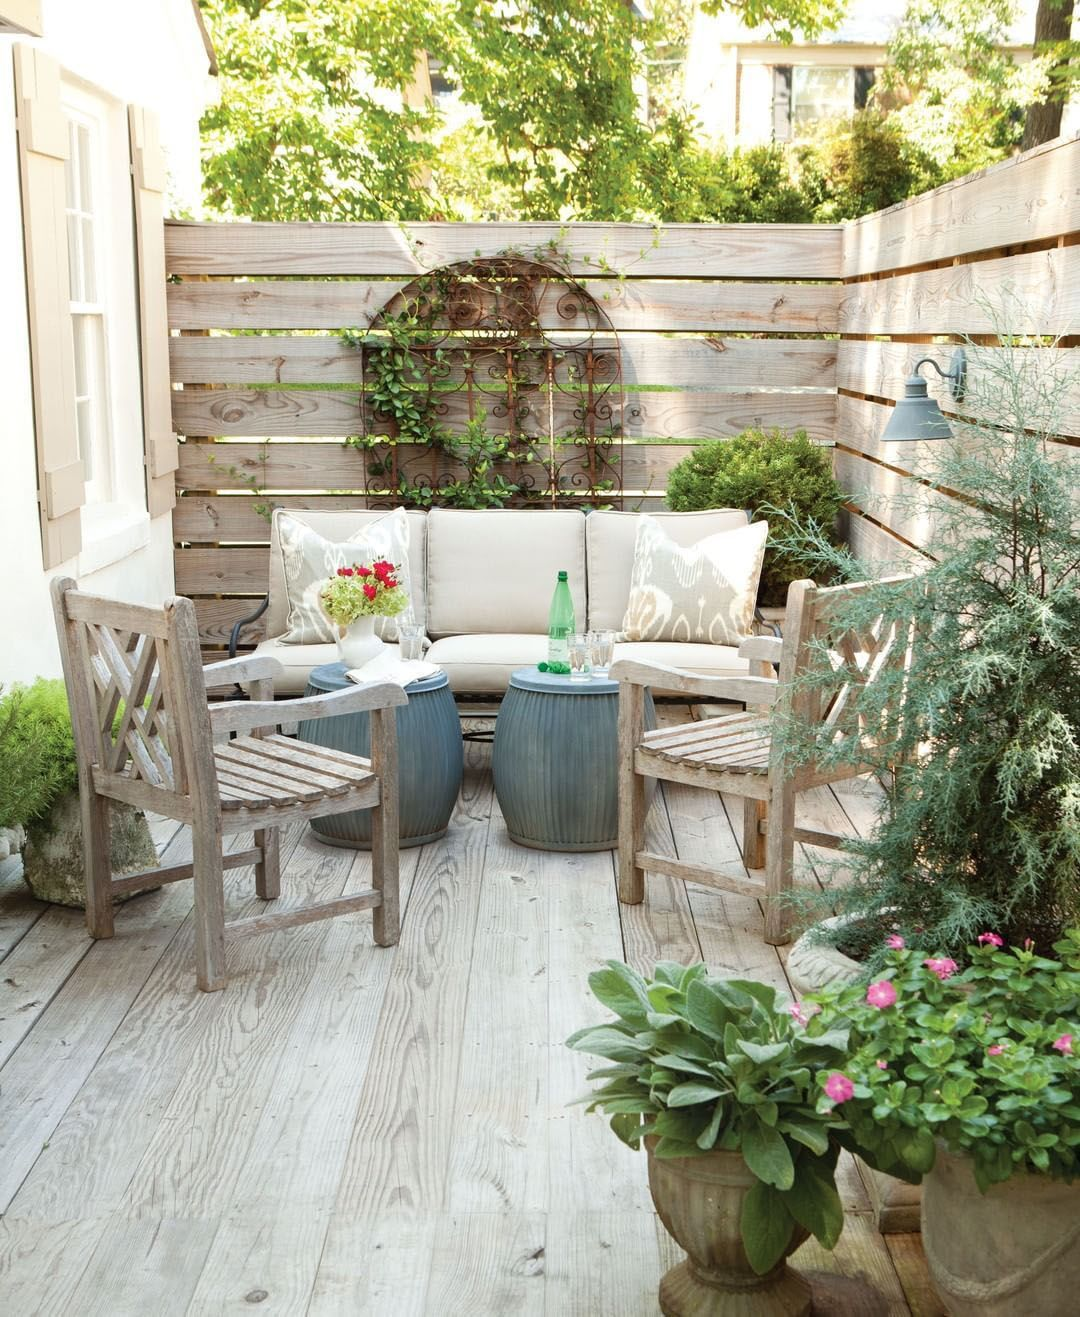 Tips For Spectacular Small Patio Ideas Townhouse Exclusive On Interioropedia Home Decor Small Patio Design Small Patio Decor Patio Ideas Townhouse Townhouse backyard design ideas